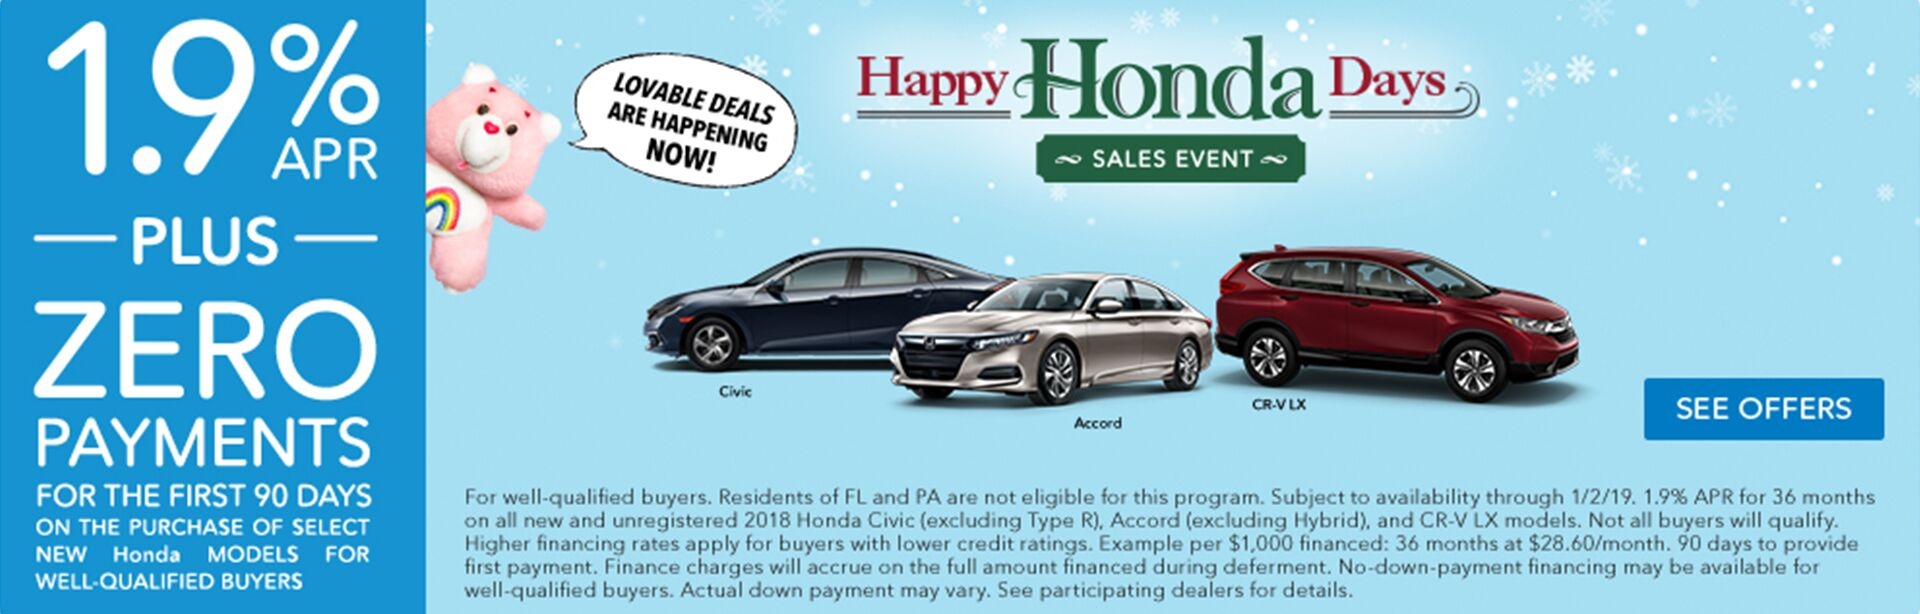 Happy Honda Days Special APR